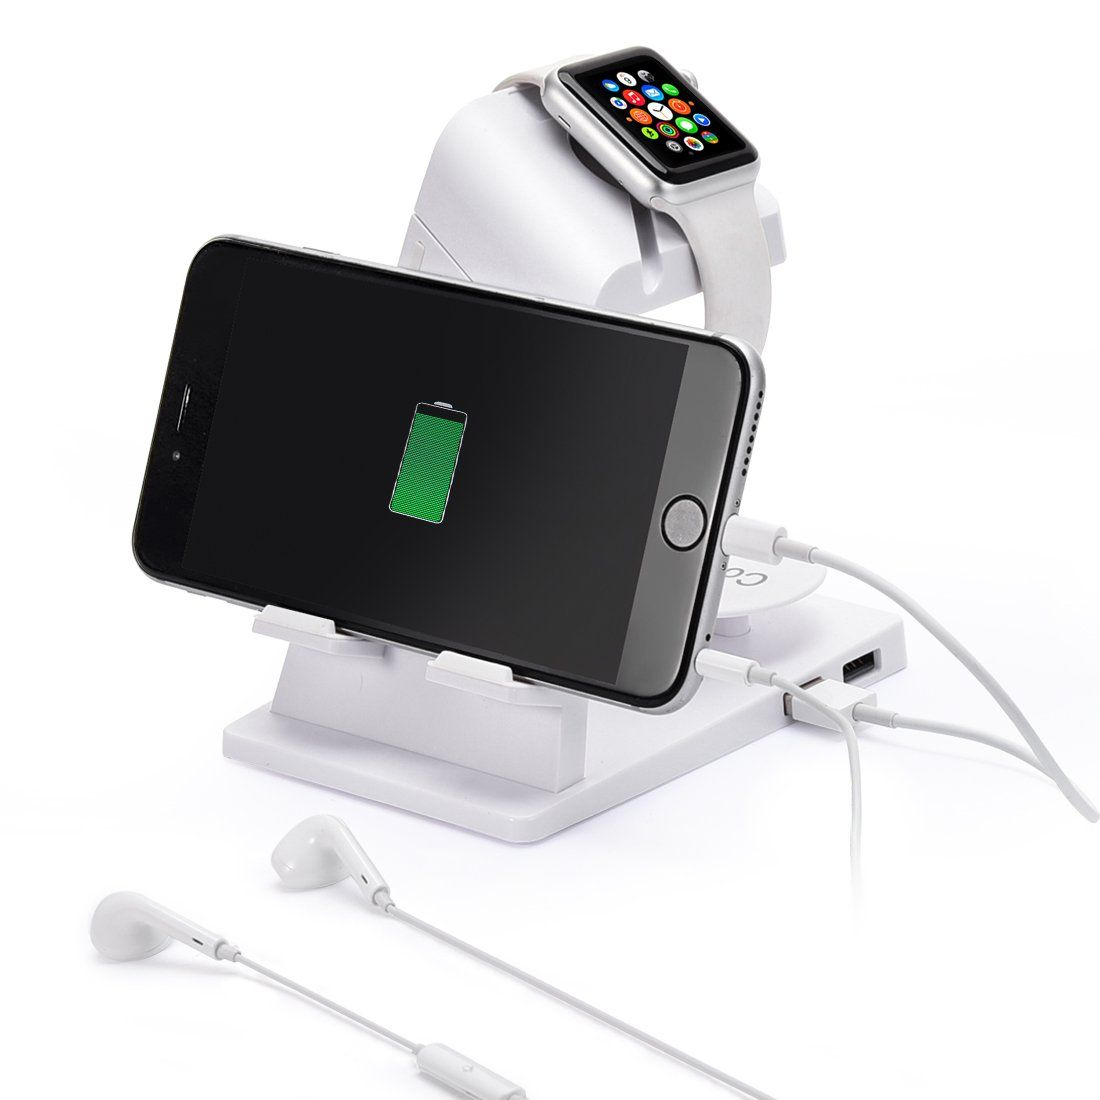 Apple Watch Stand,Itian charging station/Dock/Cradle A16 for Apple Watch,iPhone,iPad(White)